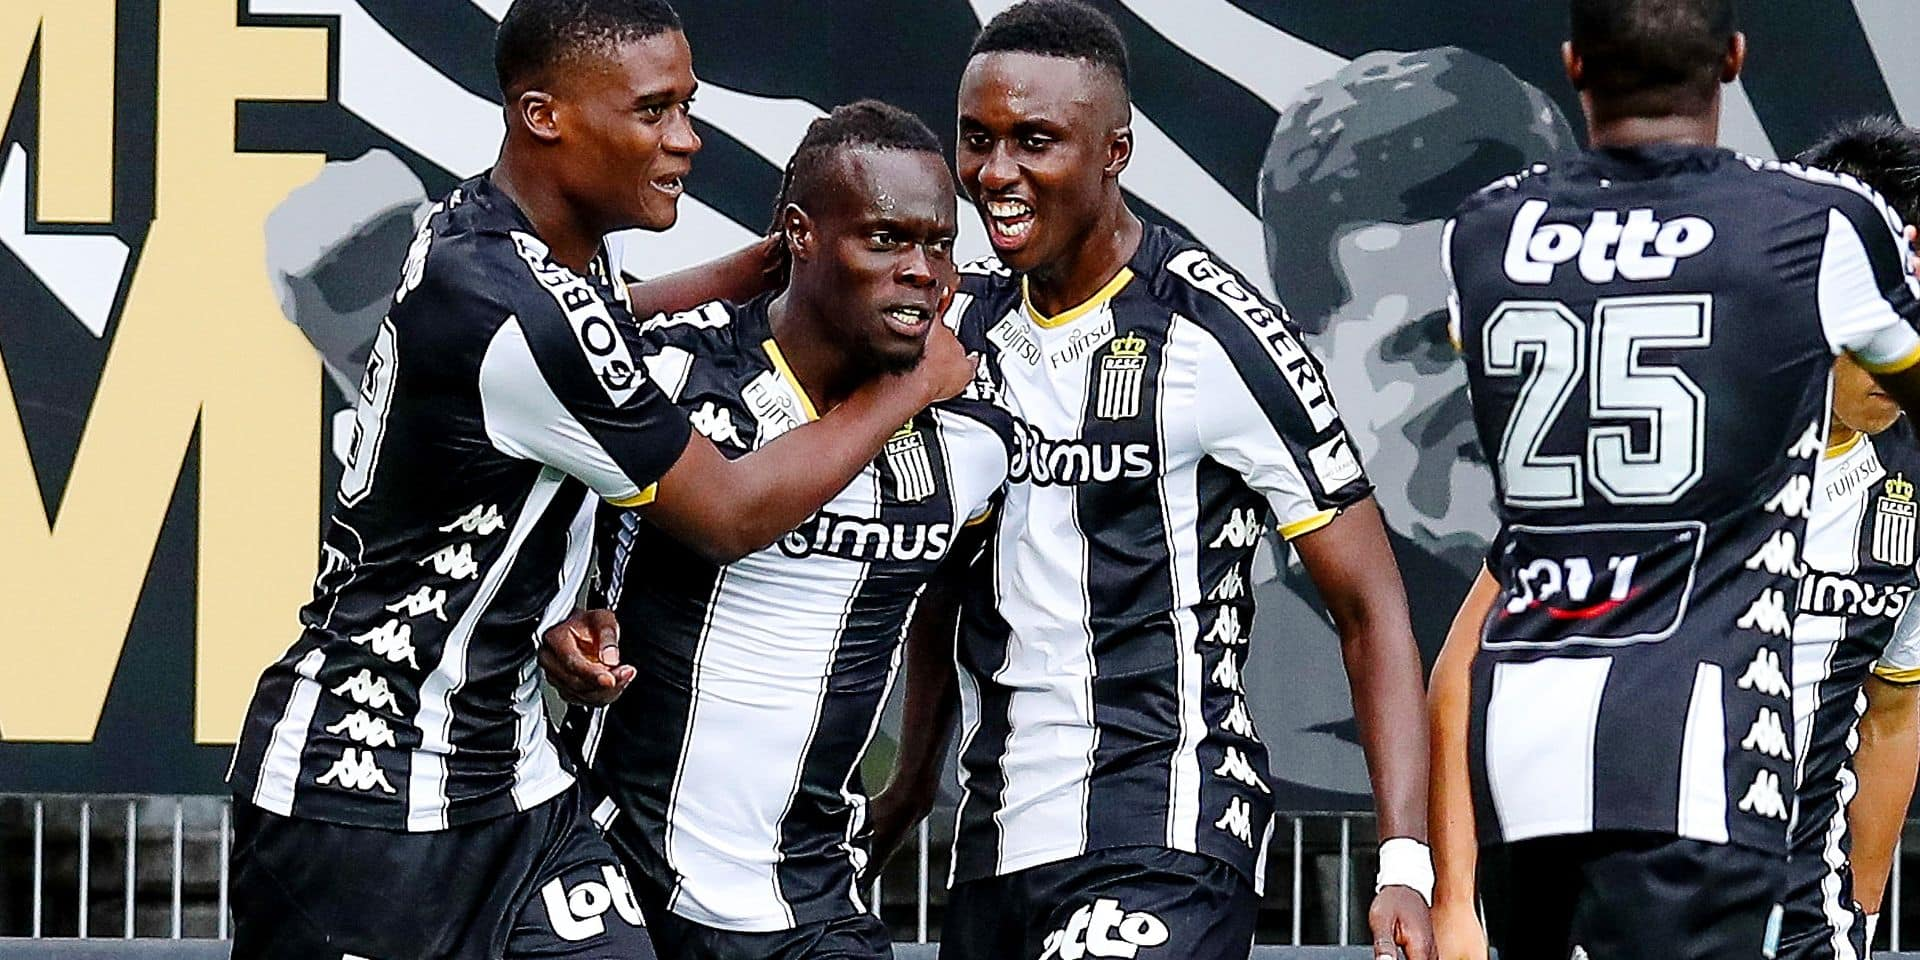 Charleroi's Mamadou Fall celebrates after scoring during a soccer match between Sporting Charleroi and Royal Antwerp FC, Sunday 11 August 2019 in Charleroi, on the third day of the 'Jupiler Pro League' Belgian soccer championship season 2019-2020. BELGA PHOTO BRUNO FAHY